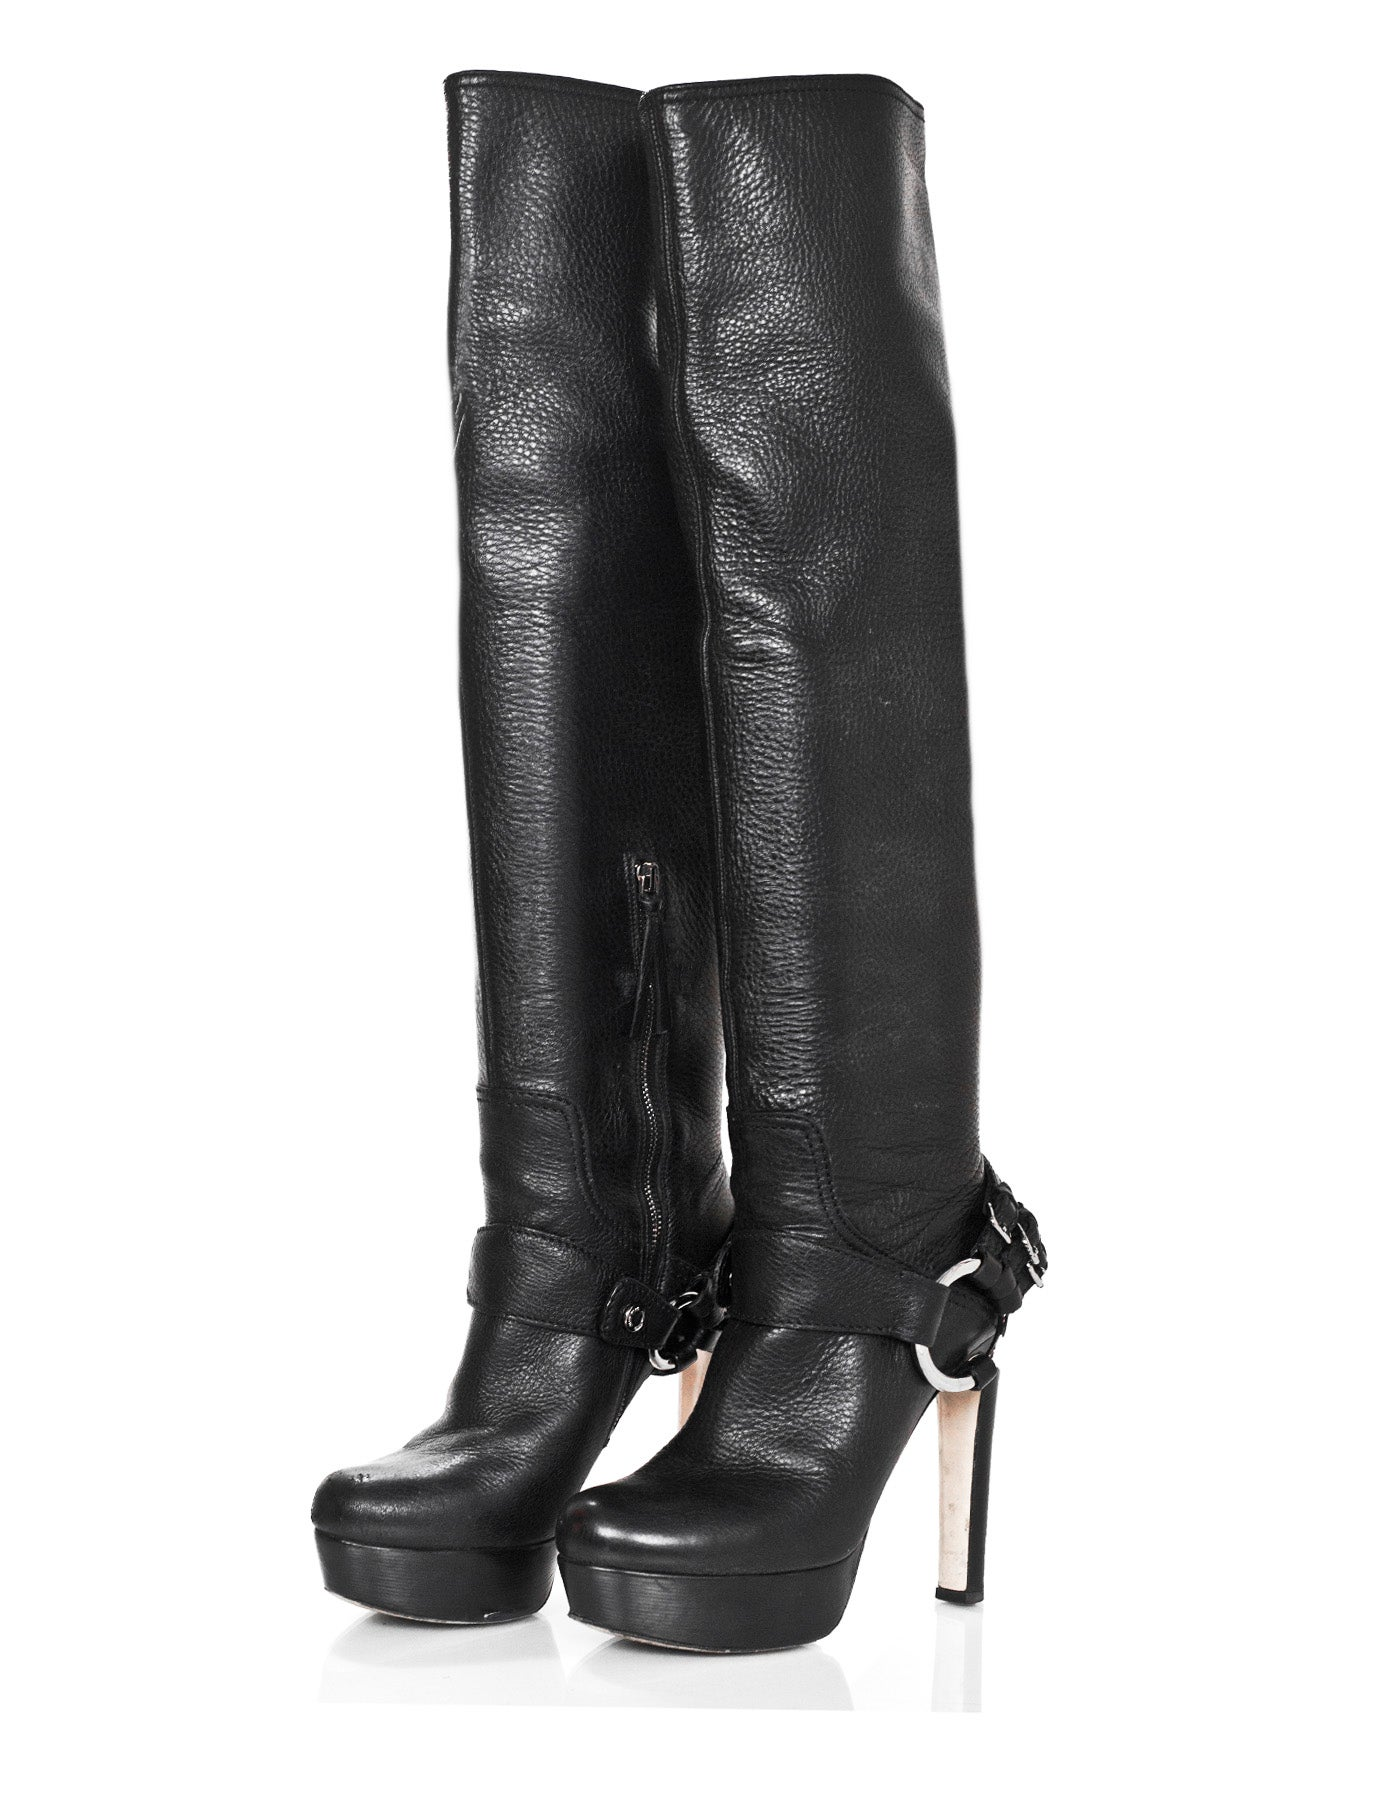 007a2b83ac7d Miu Miu Black Leather Over The Knee Boots Sz 38 with Box and DB For Sale at  1stdibs